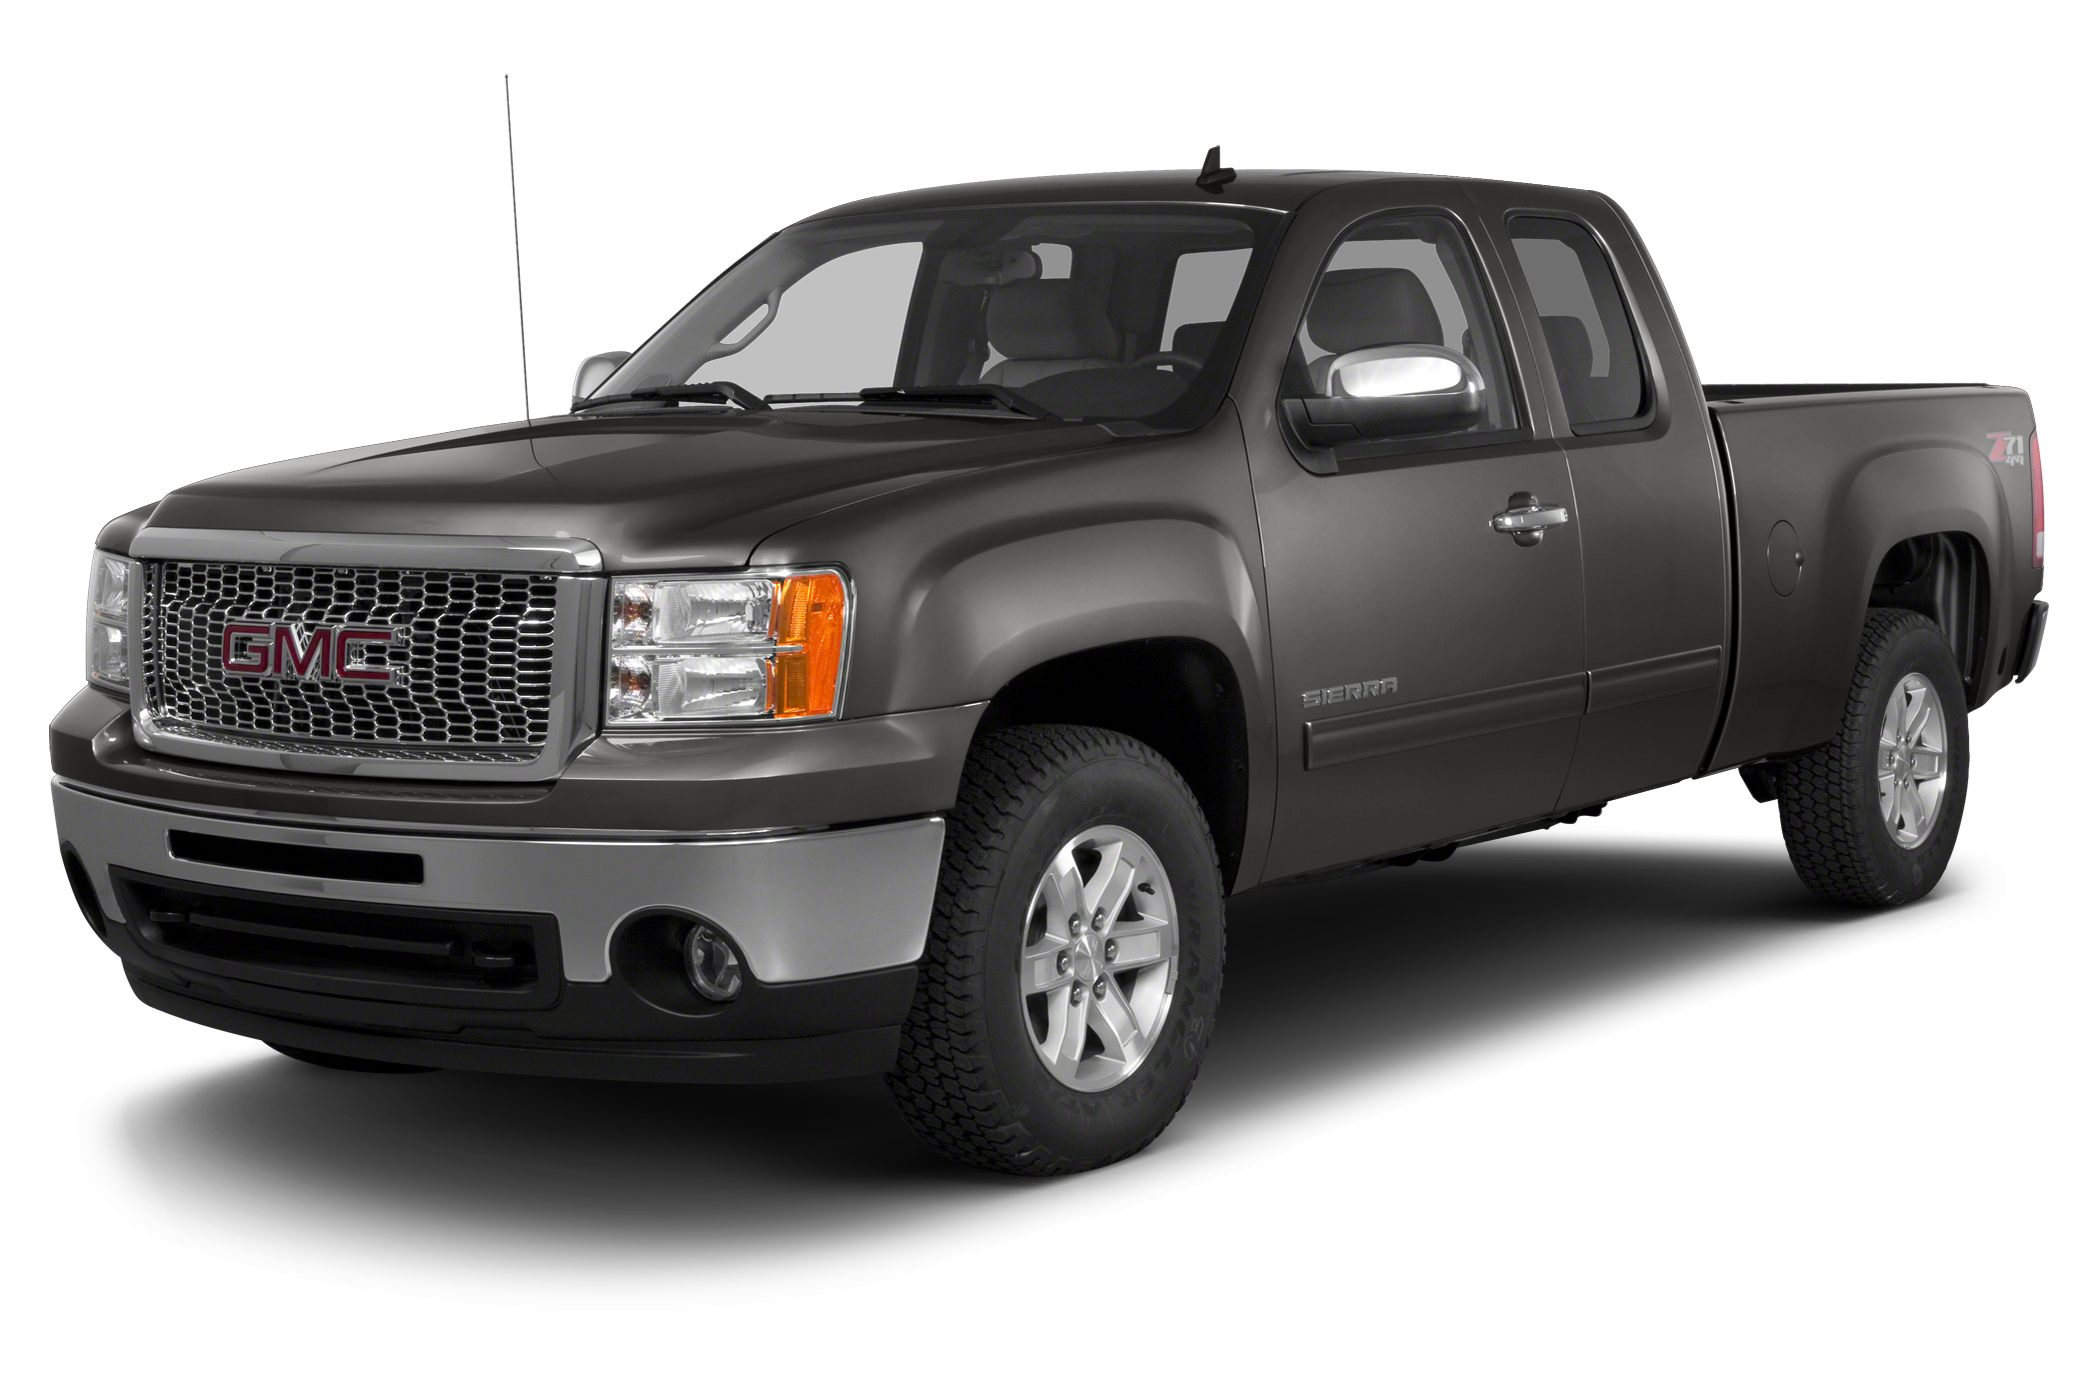 2013 GMC Sierra 1500 SLT Crew Cab Pickup for sale in Hopkinsville for $32,987 with 36,895 miles.